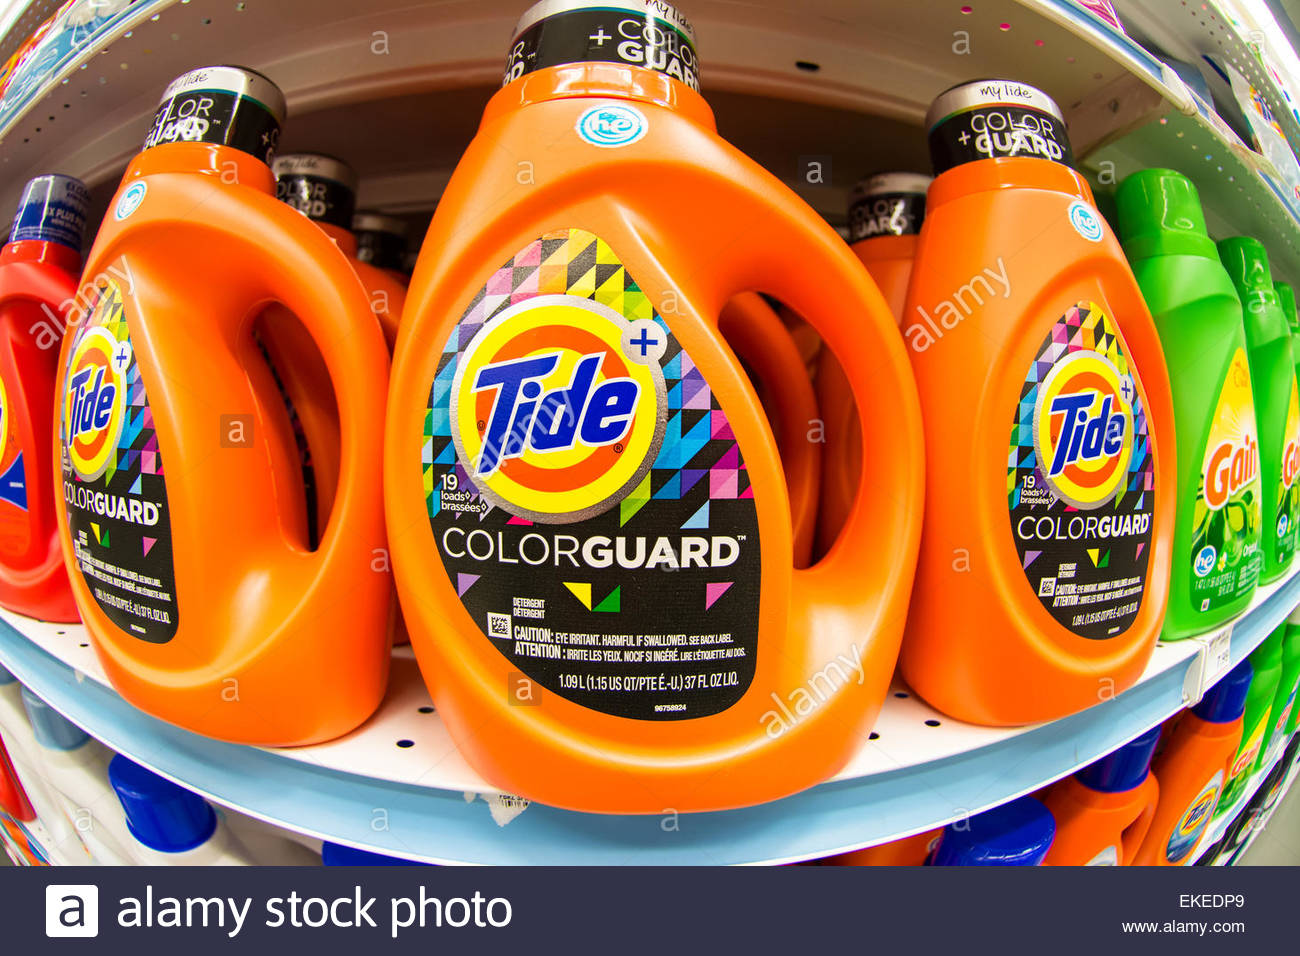 Tide laundry detergent in store shelf.Tide is the brand-name of a laundry detergent - Stock Image